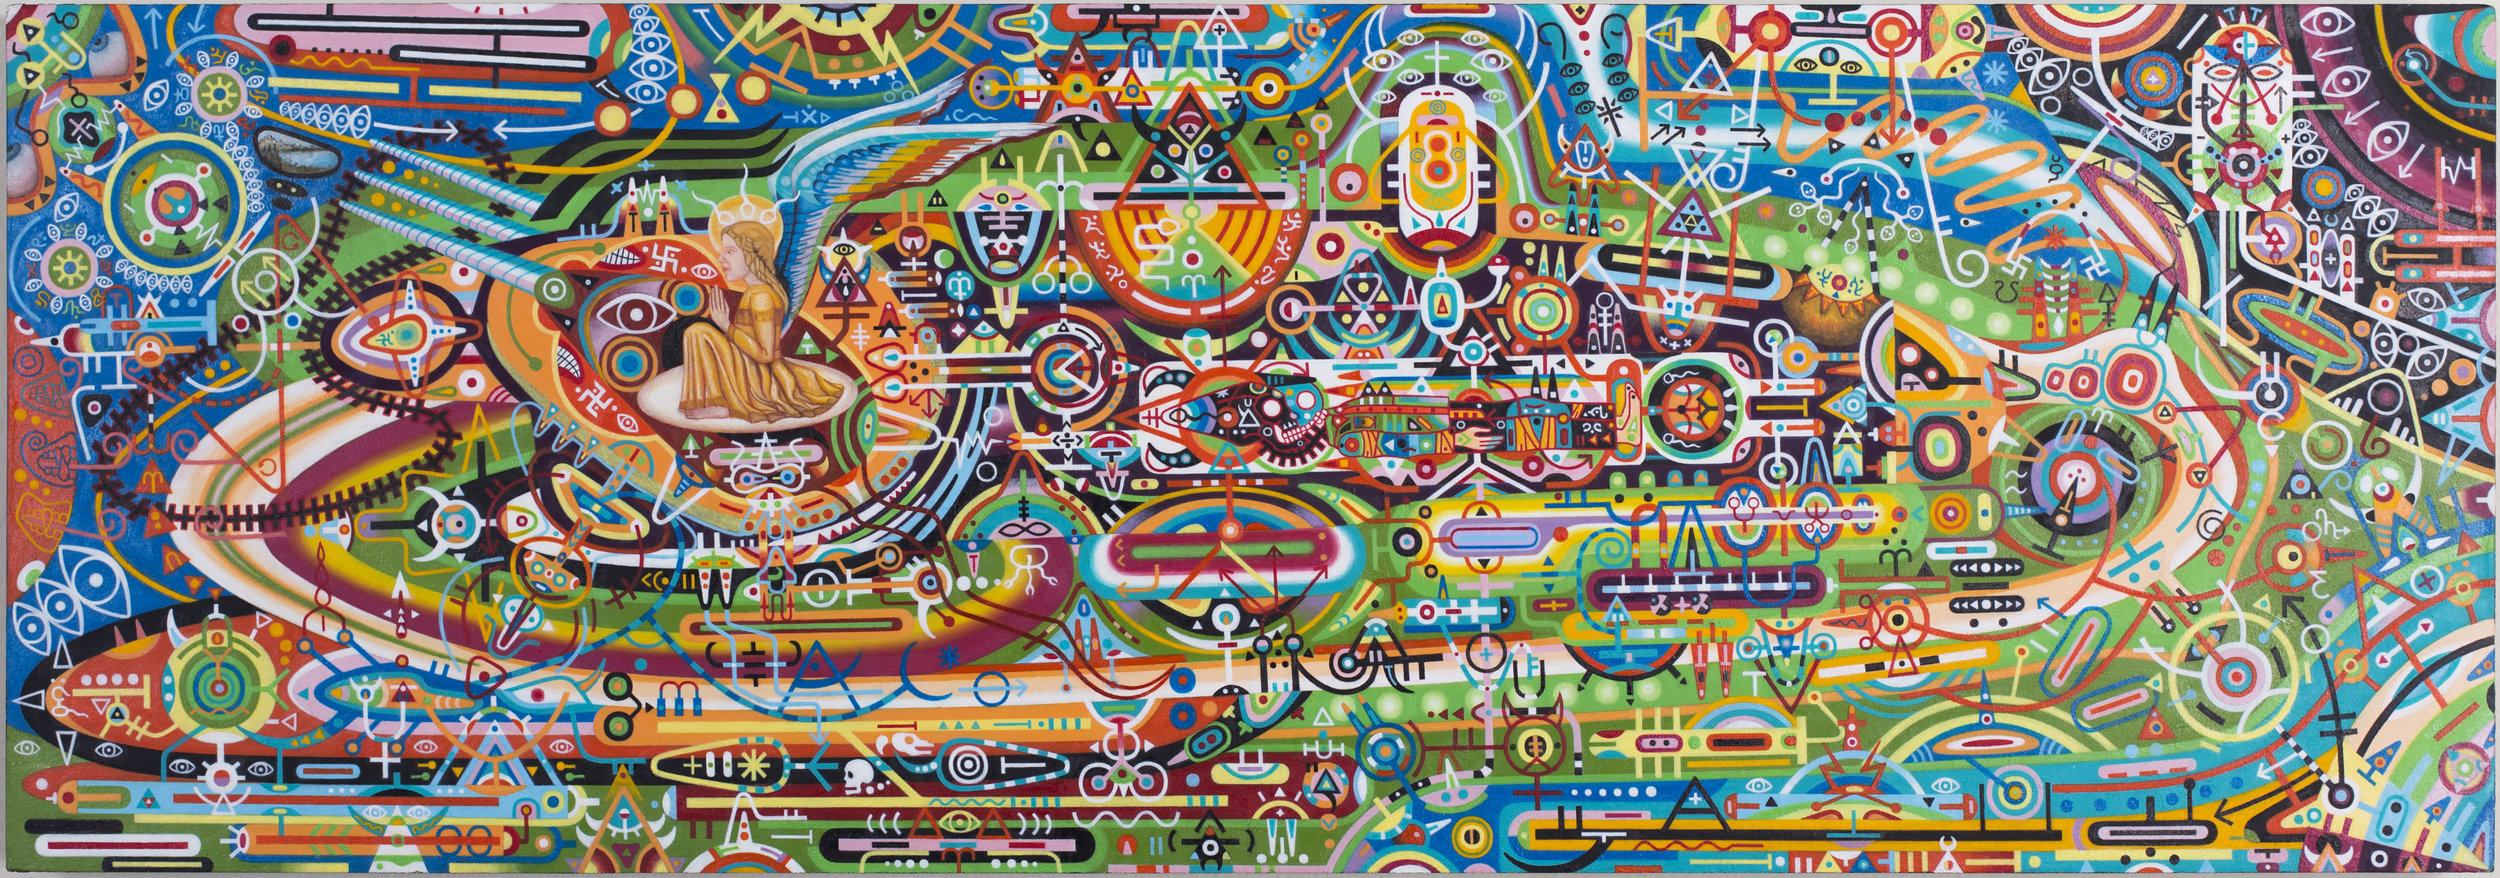 """Shawn Thornton,  Brahmastra For a New Age (UFO/Time Machine) , 2010-2013, 9"""" x 27"""", Oil on panel."""